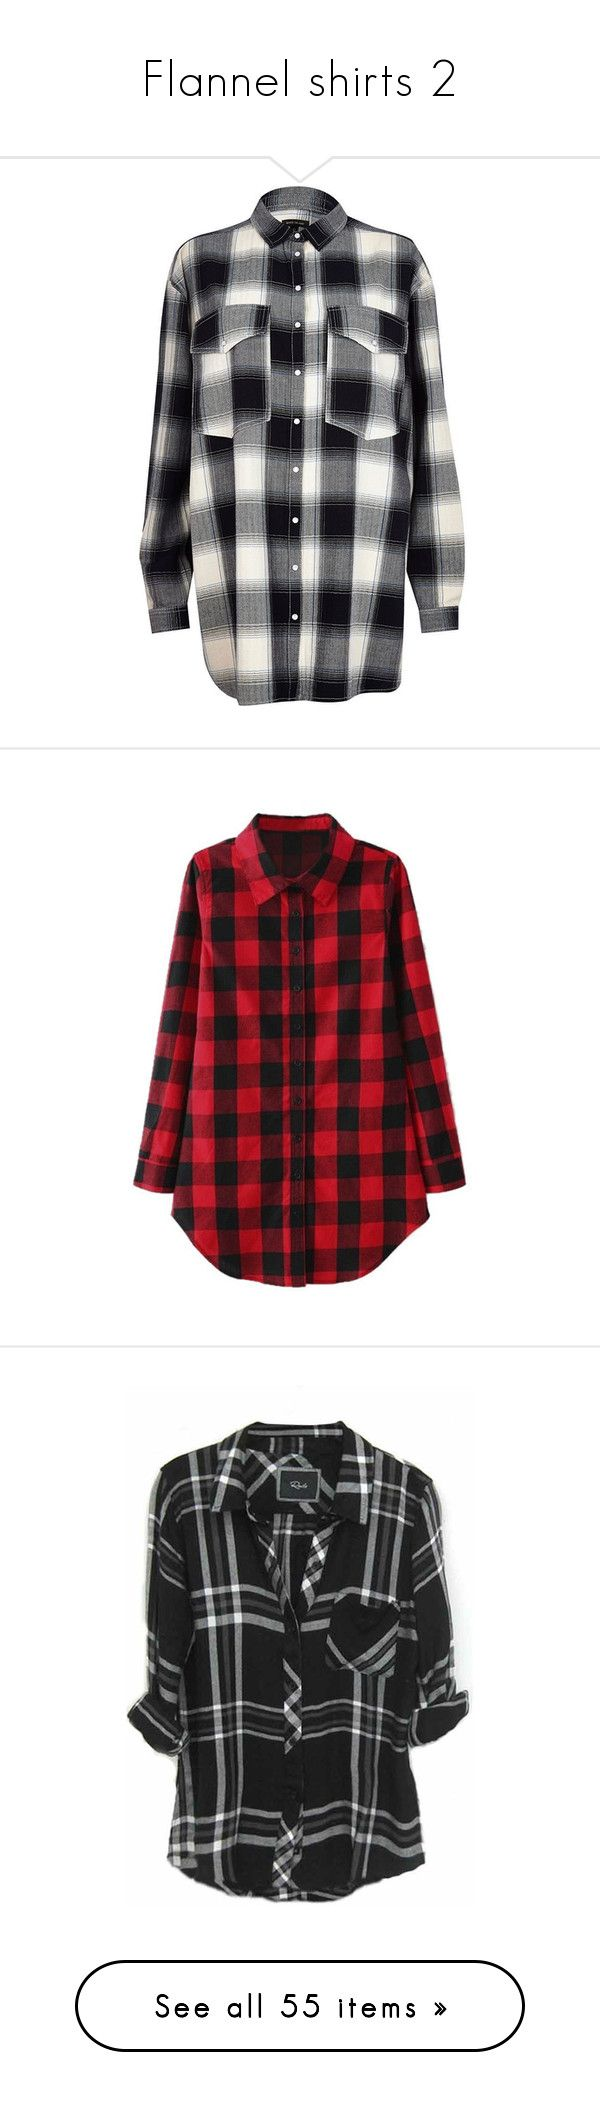 """""""Flannel shirts 2"""" by musicmelody1 ❤ liked on Polyvore featuring tops, shirts, flannel, river island, sale, over sized shirts, oversized tops, shirt top, oversized shirt and long sleeves"""